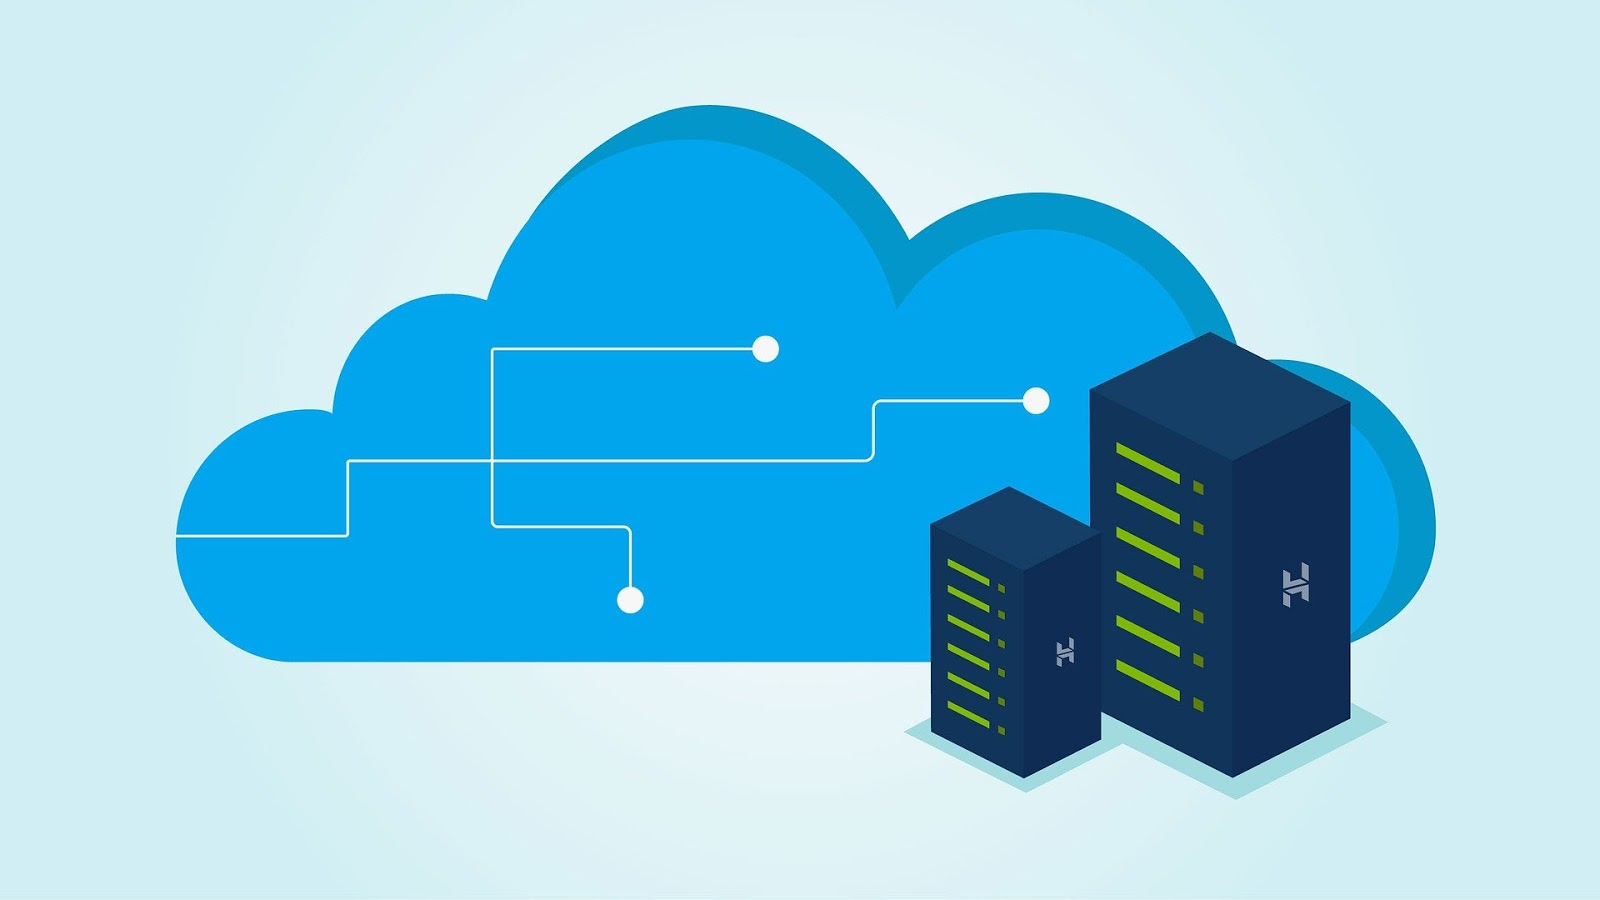 cloud infographic with data center